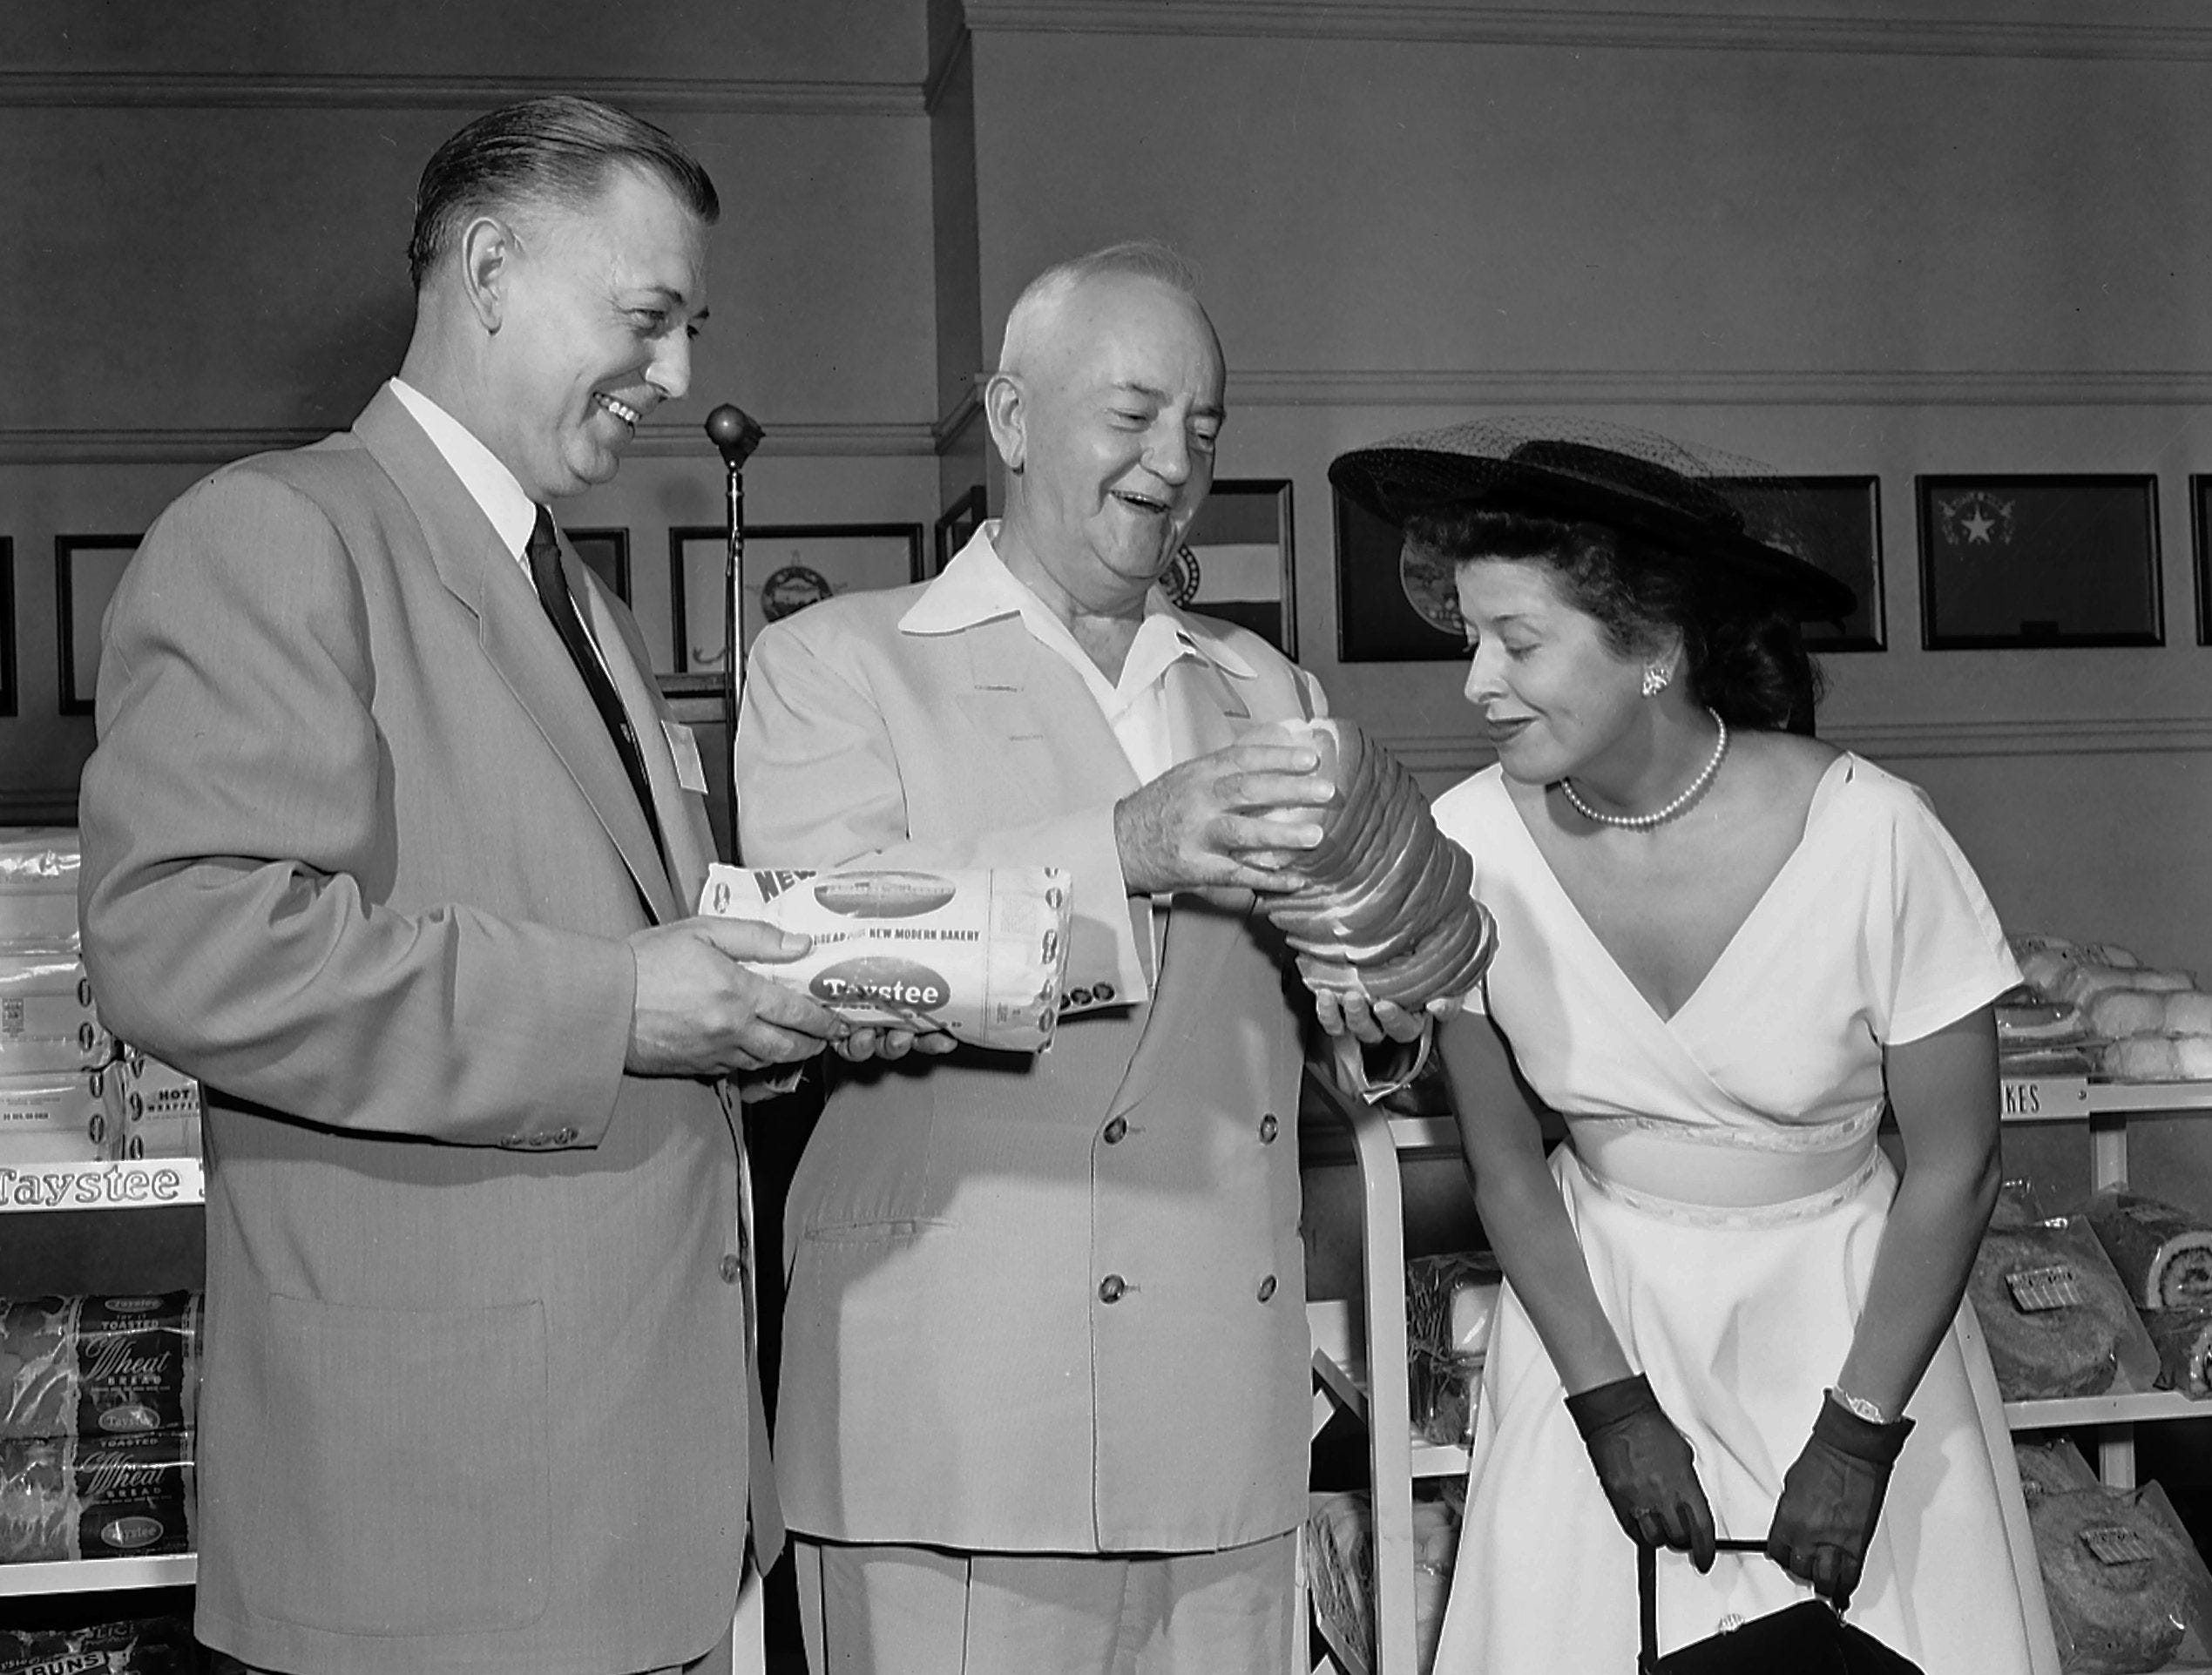 Mayor Frank Tobey, center, beamingly offers Mrs. Regina Webb of 515 South Barksdale a sniff of the new loaf of Taystee bread introduced at a luncheon at the Peabody in June 1953. M.J. Curry, manager of Taystee, looks on.